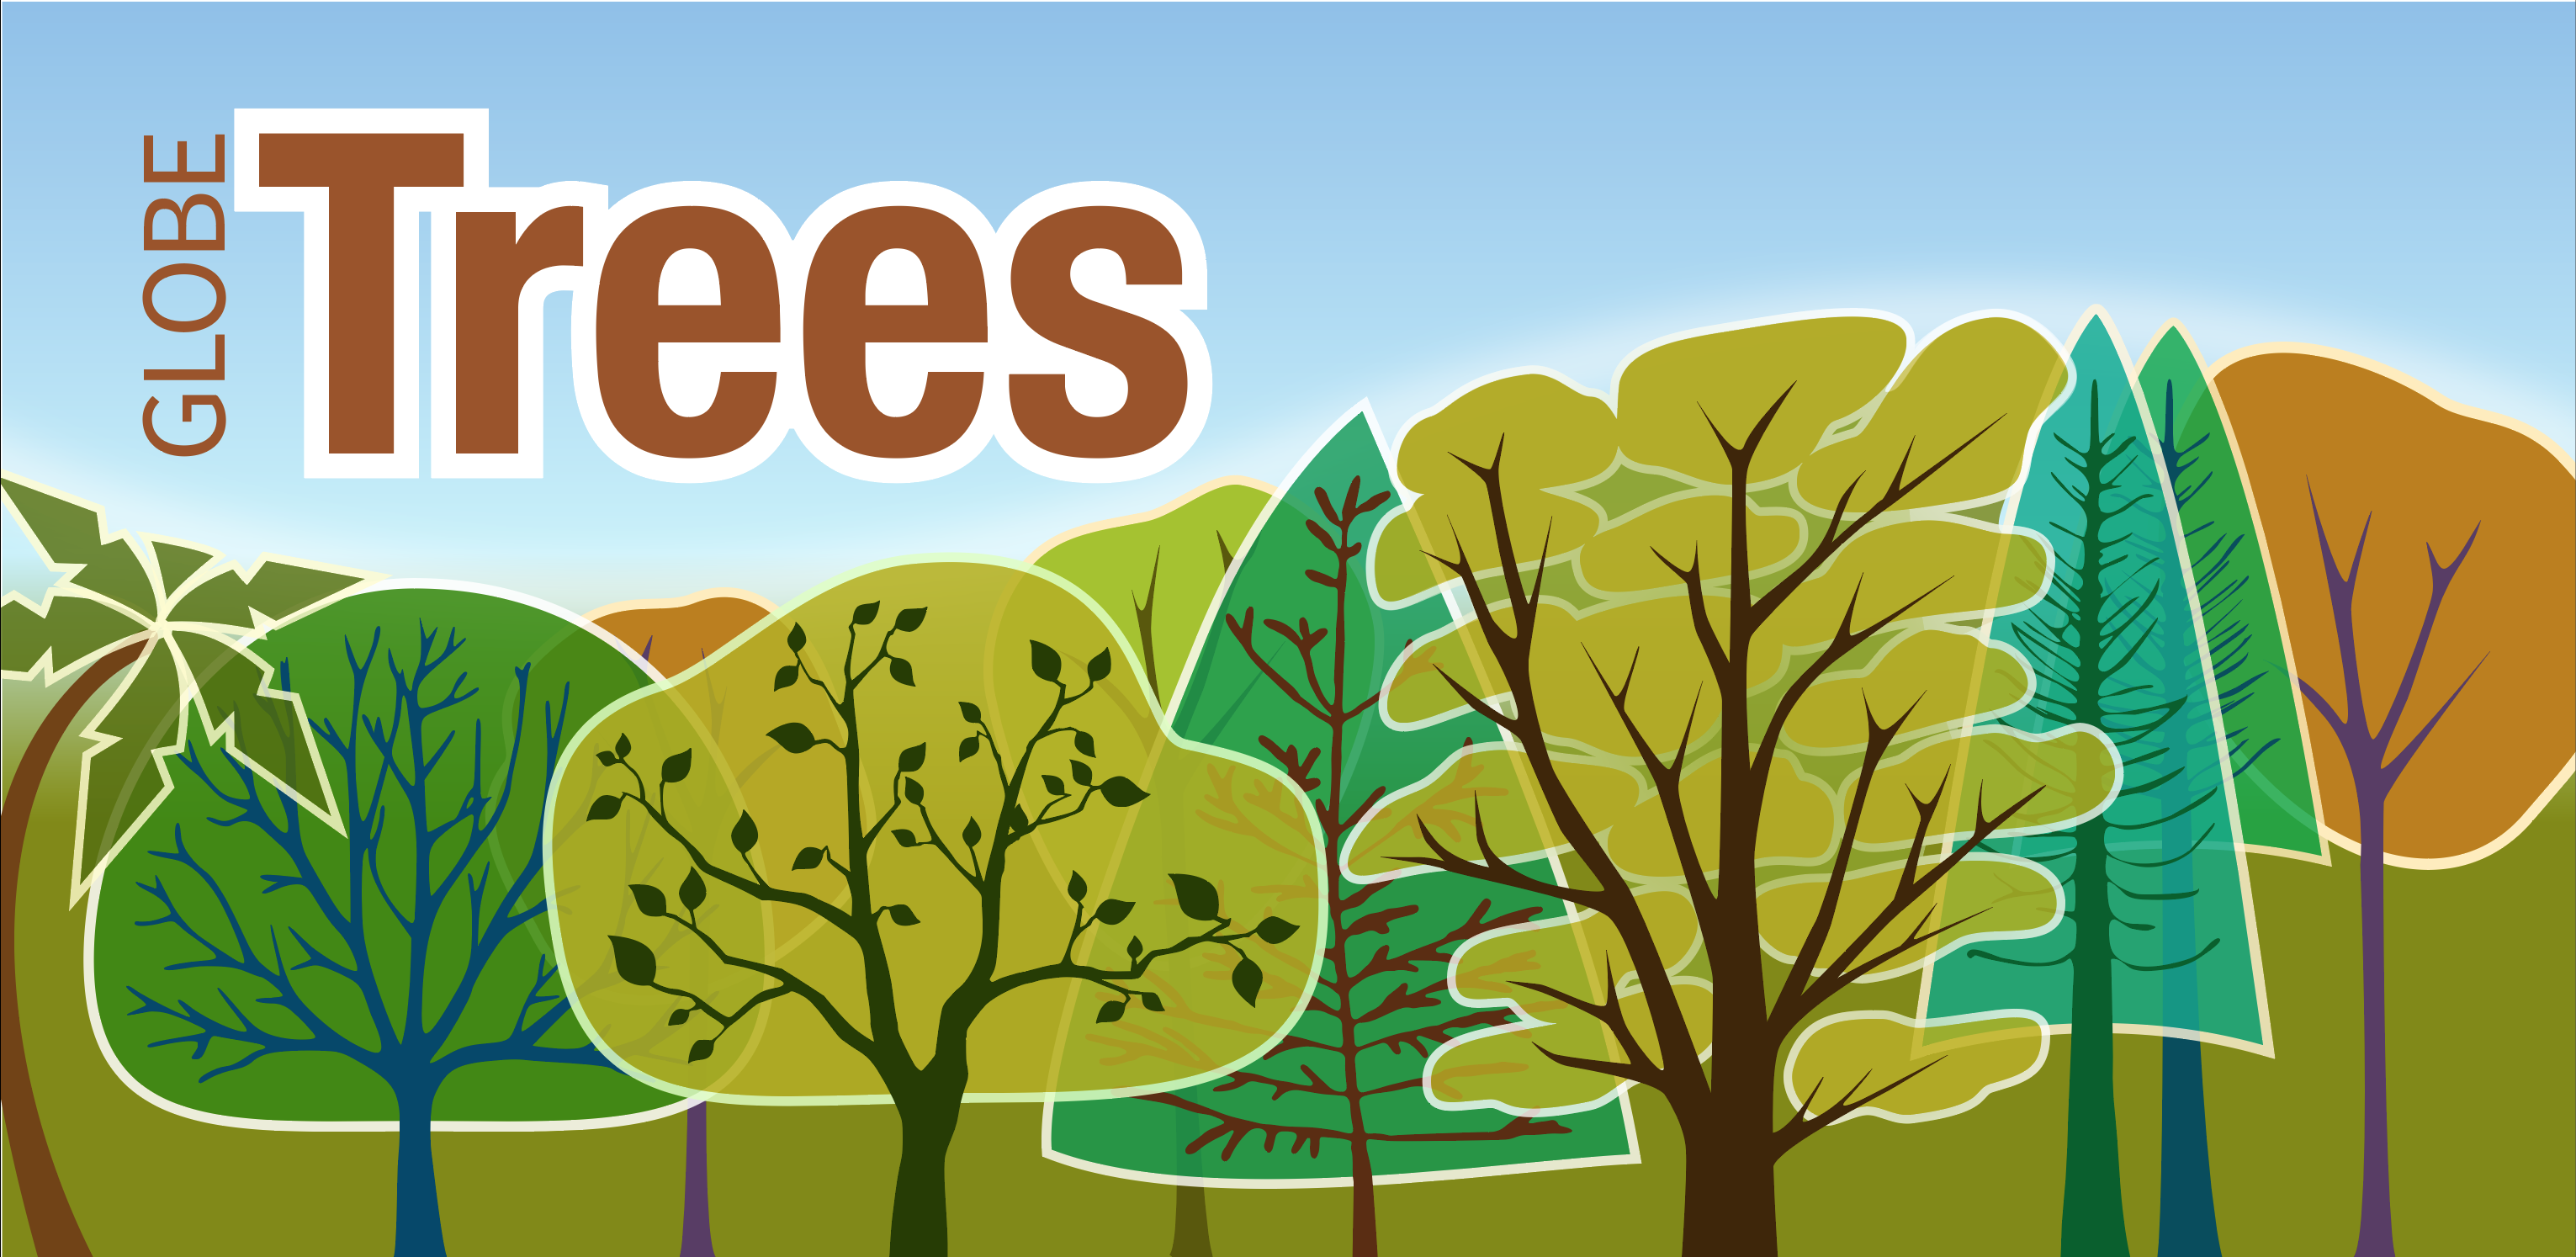 Trees app graphic